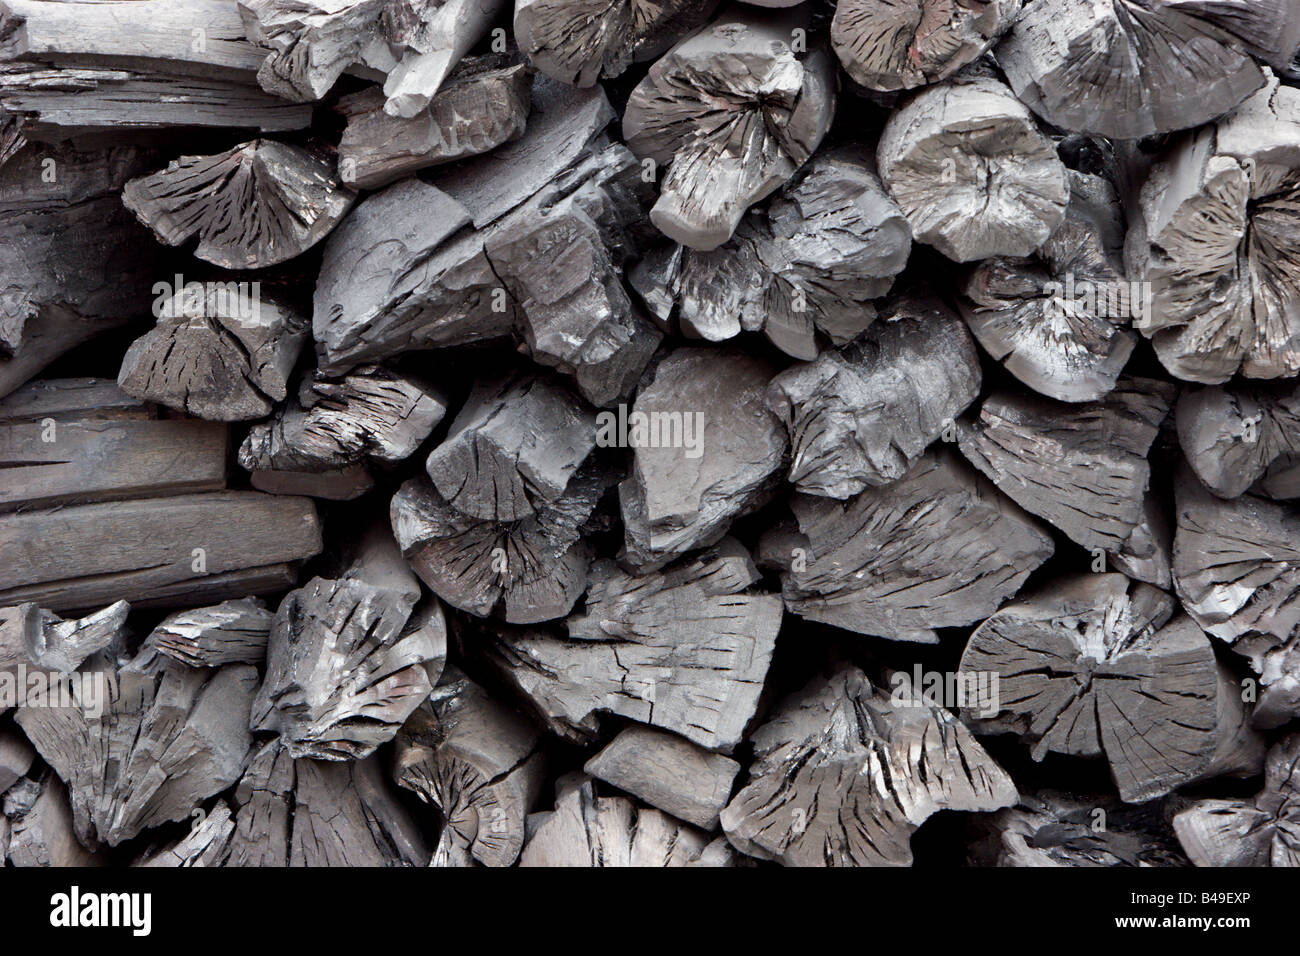 charcoal carbon cooking fuel burnt wood fire - Stock Image